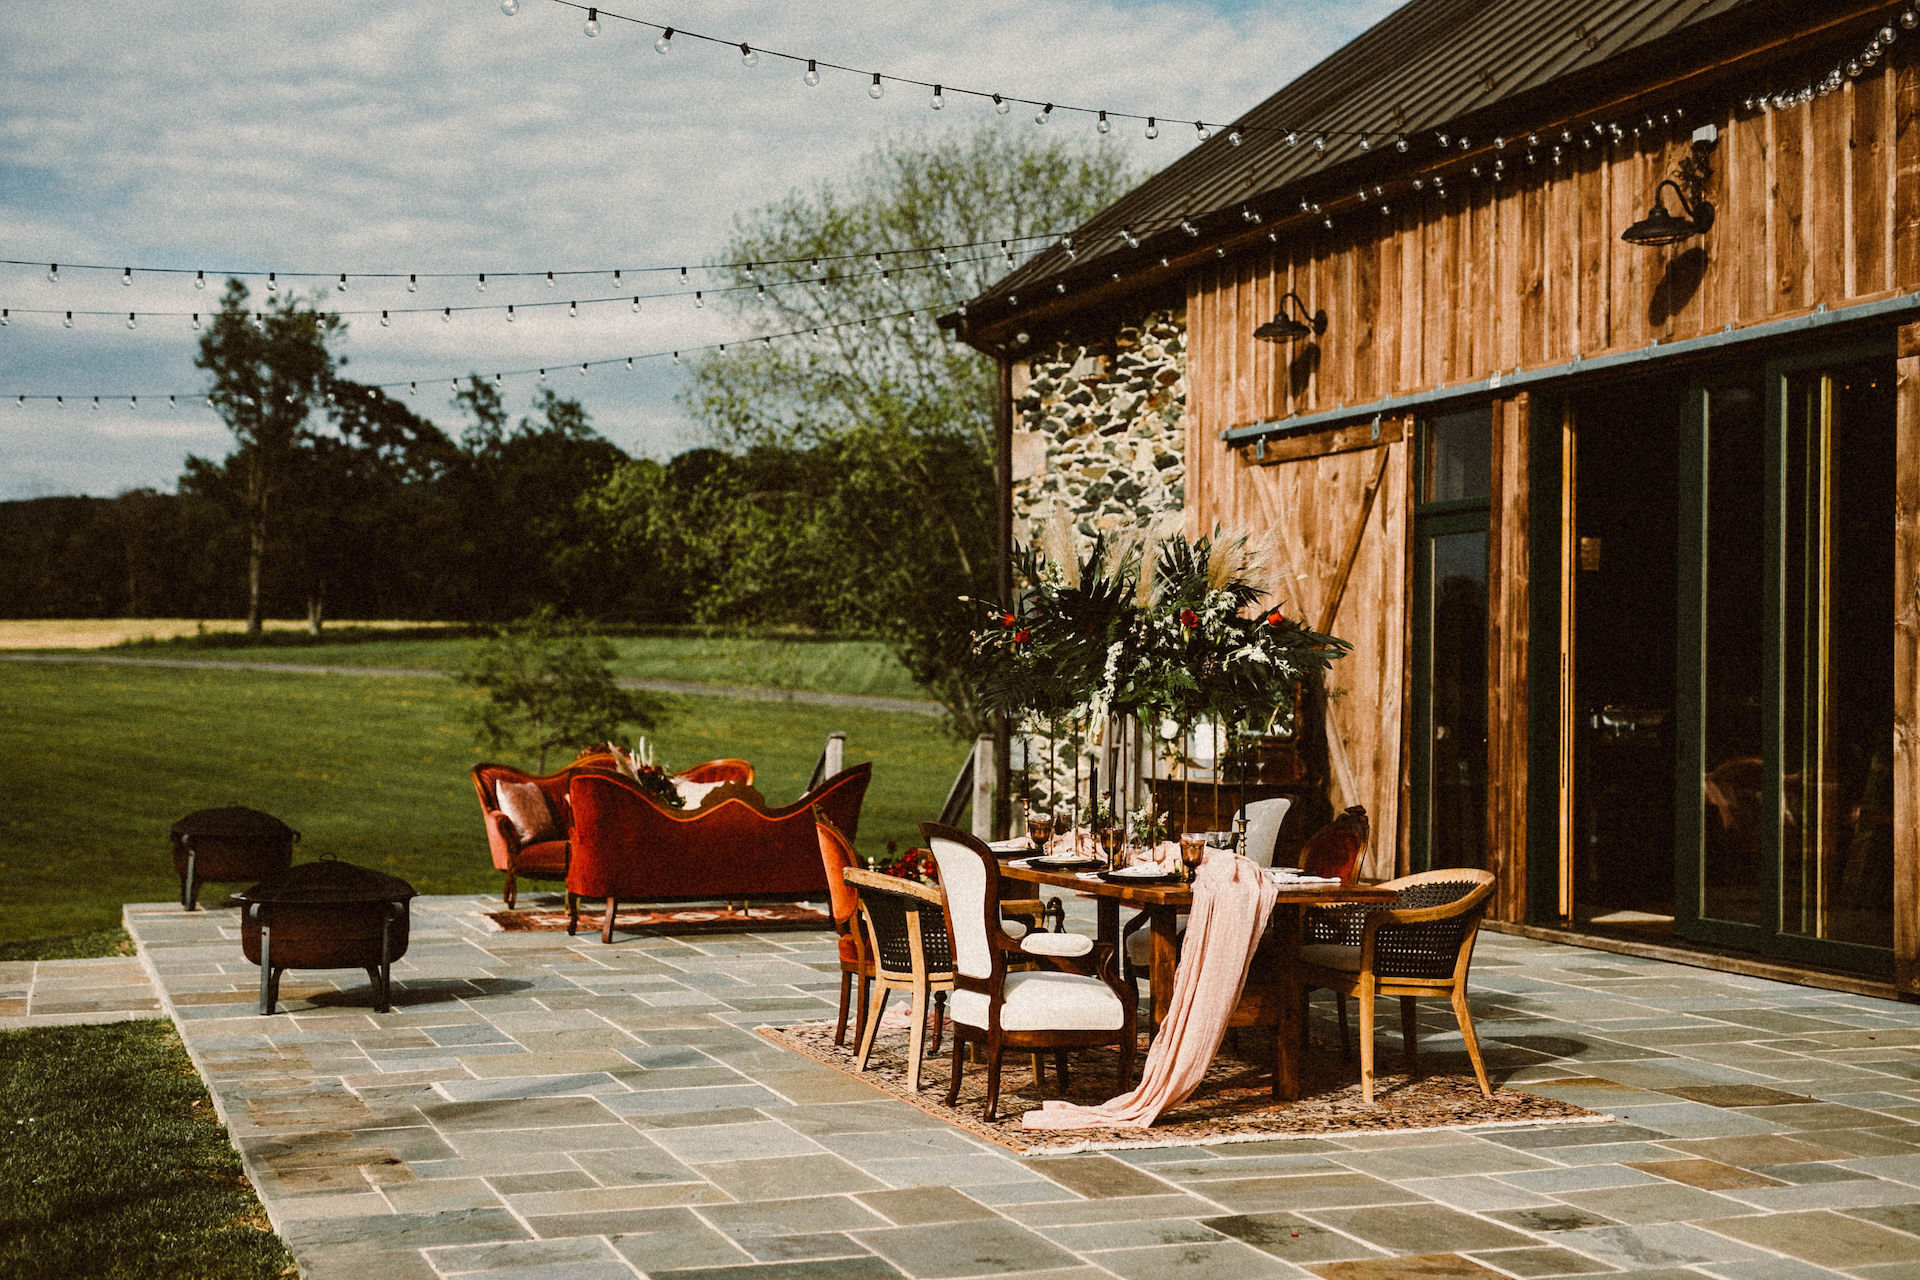 Barn stone patio with staged furniture on it